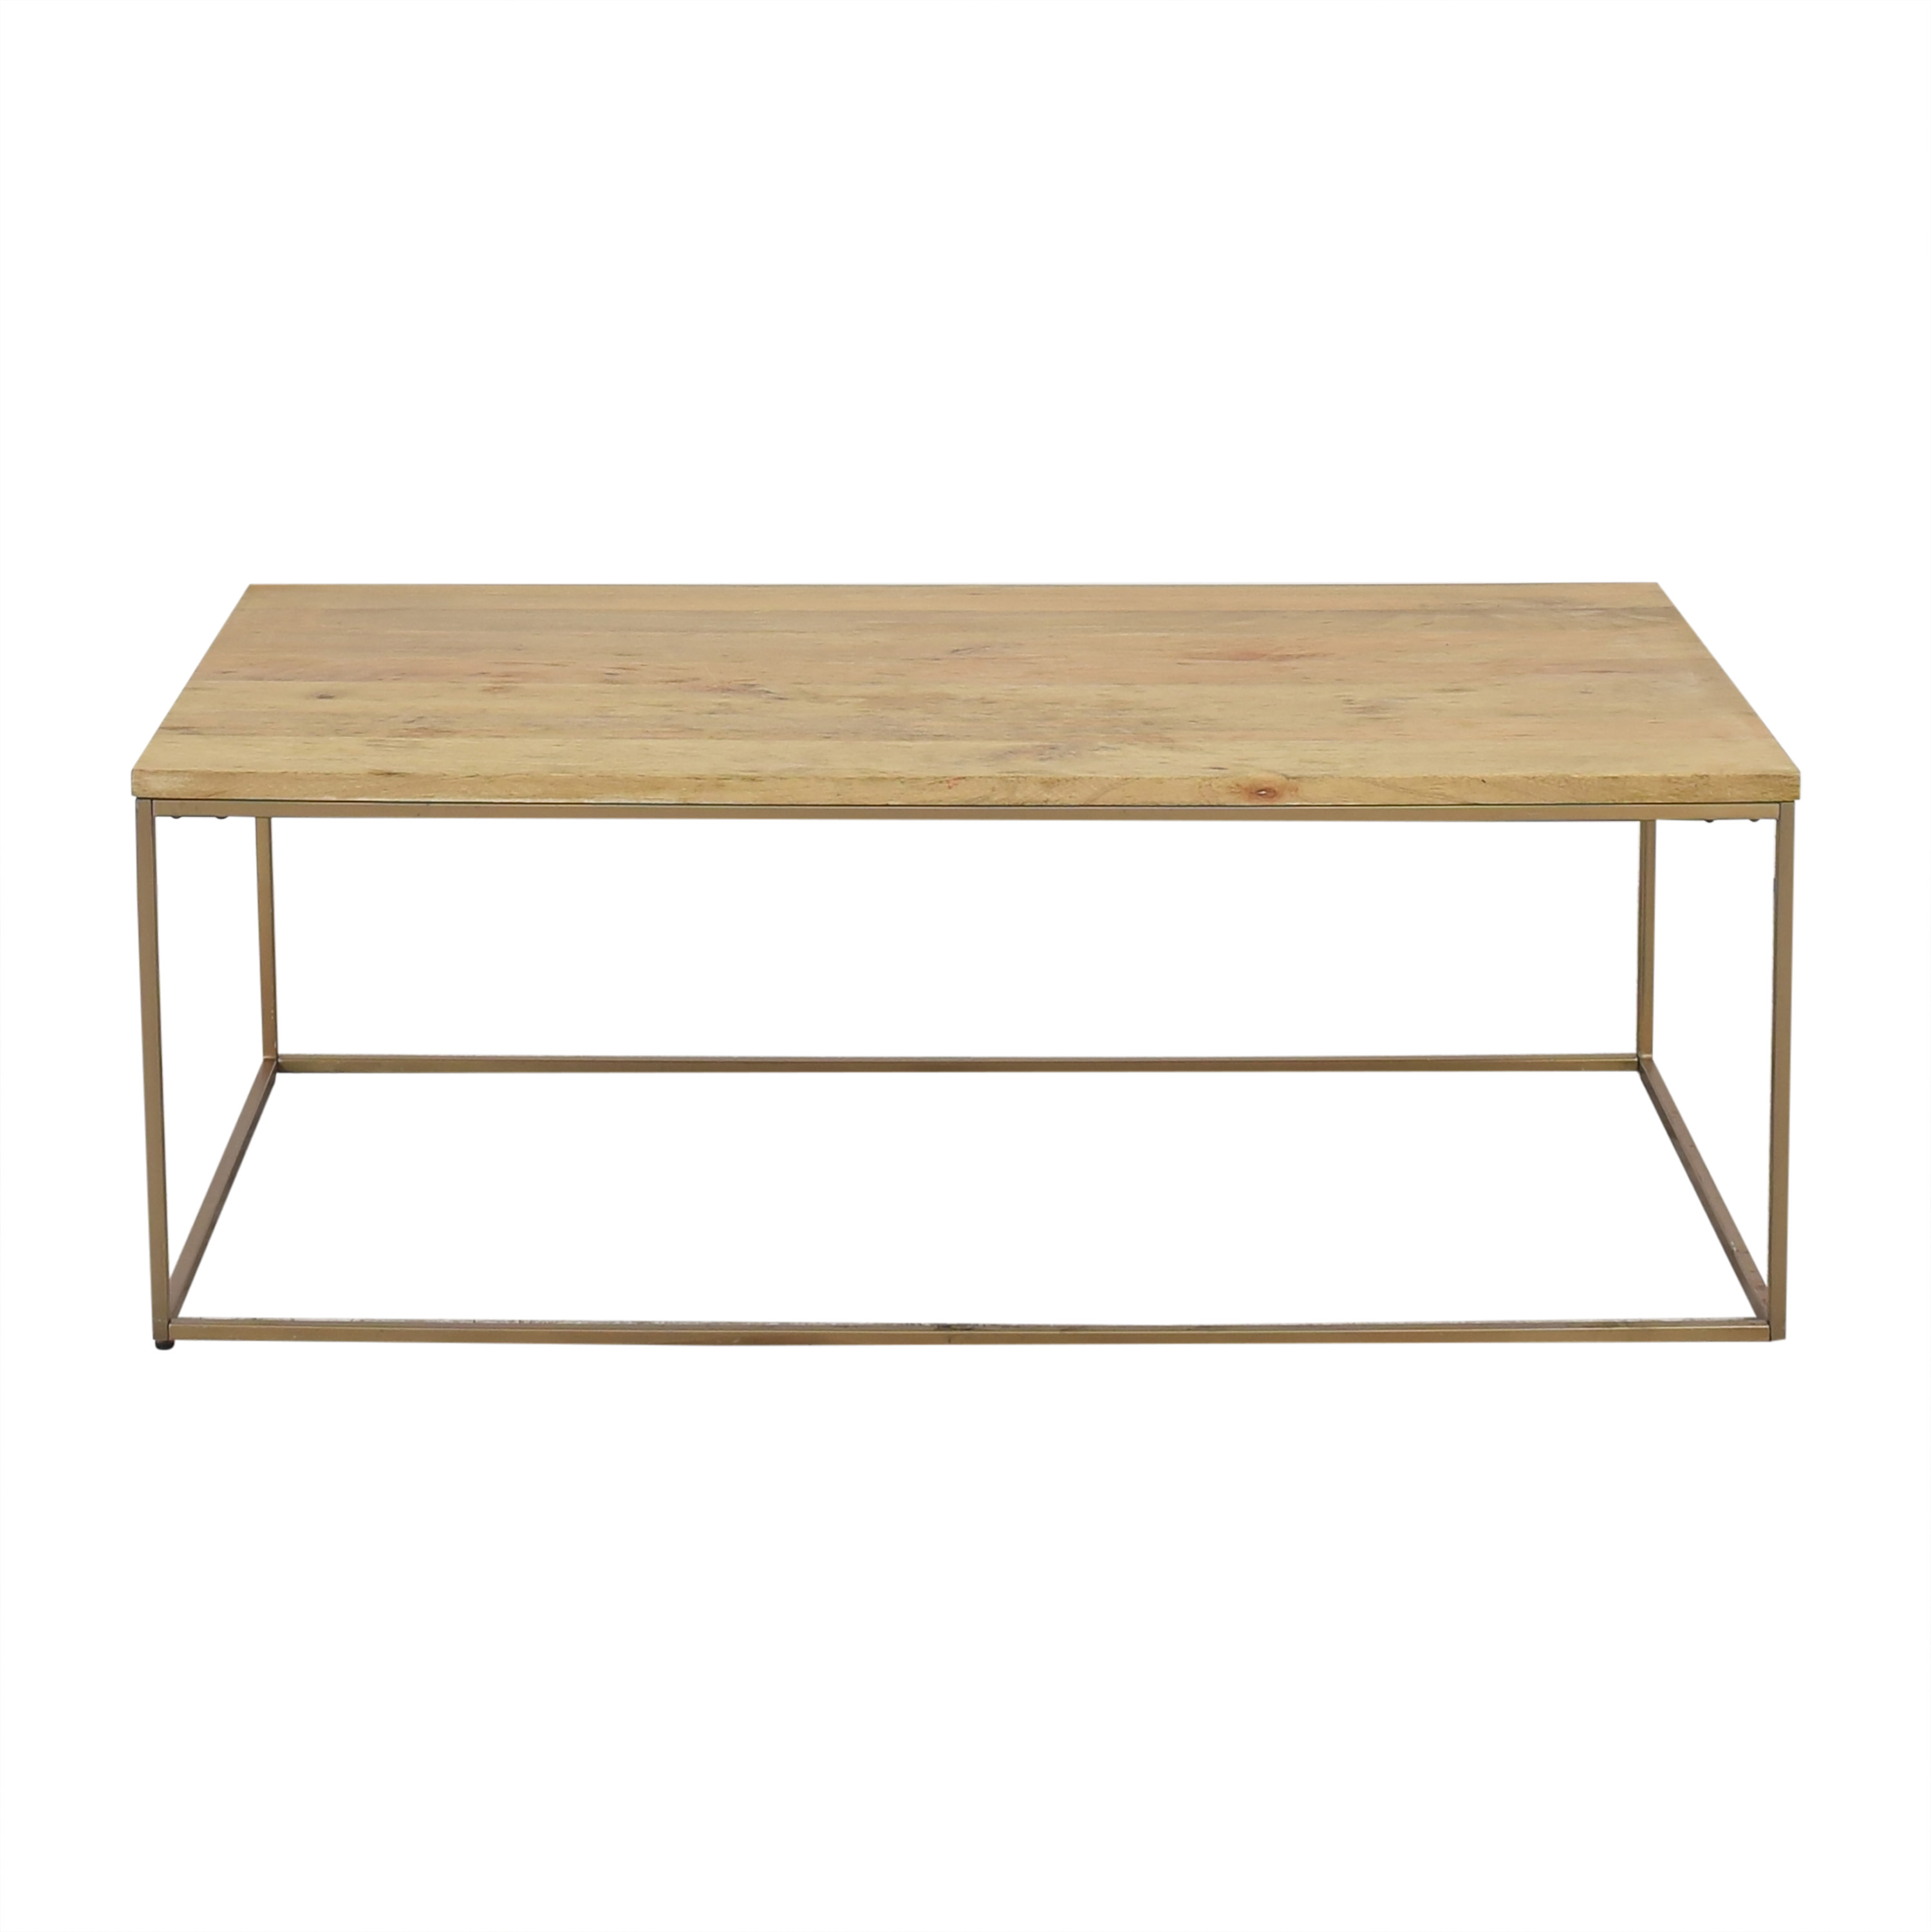 West Elm West Elm Streamline Coffee Table discount